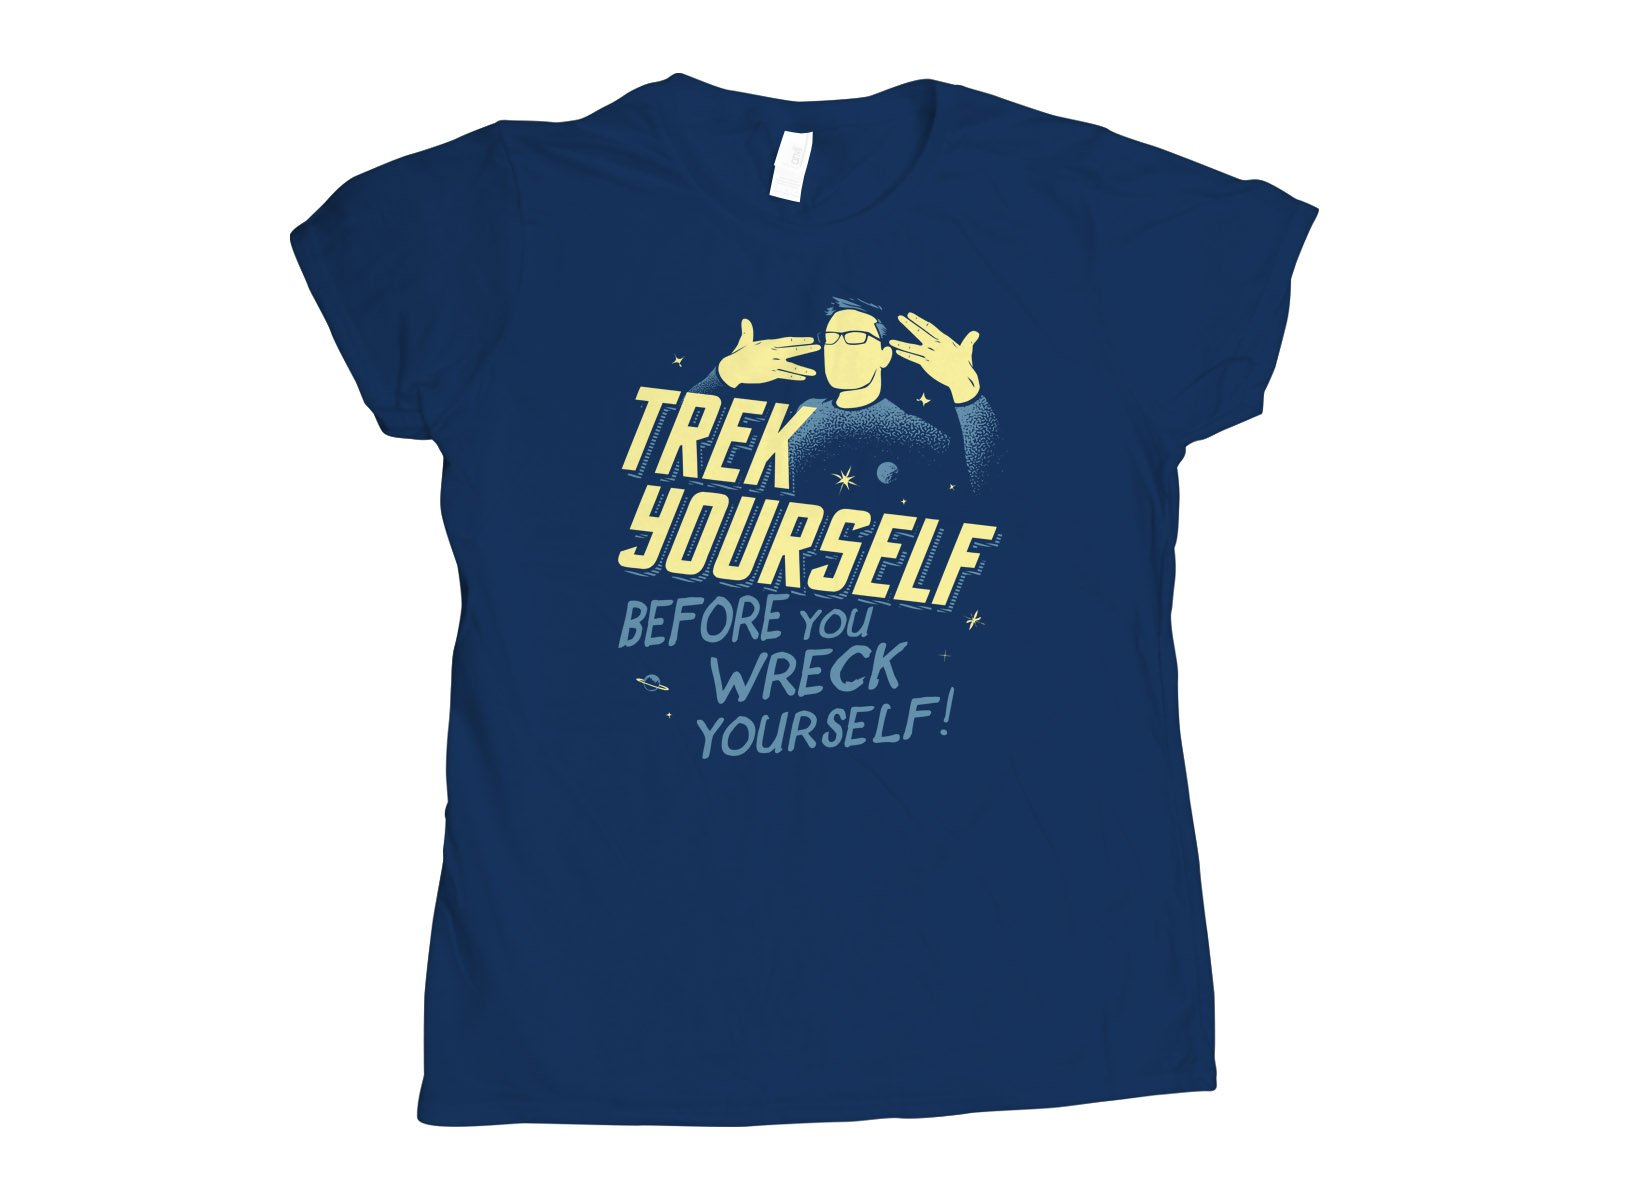 Trek Yourself Before You Wreck Yourself on Womens T-Shirt